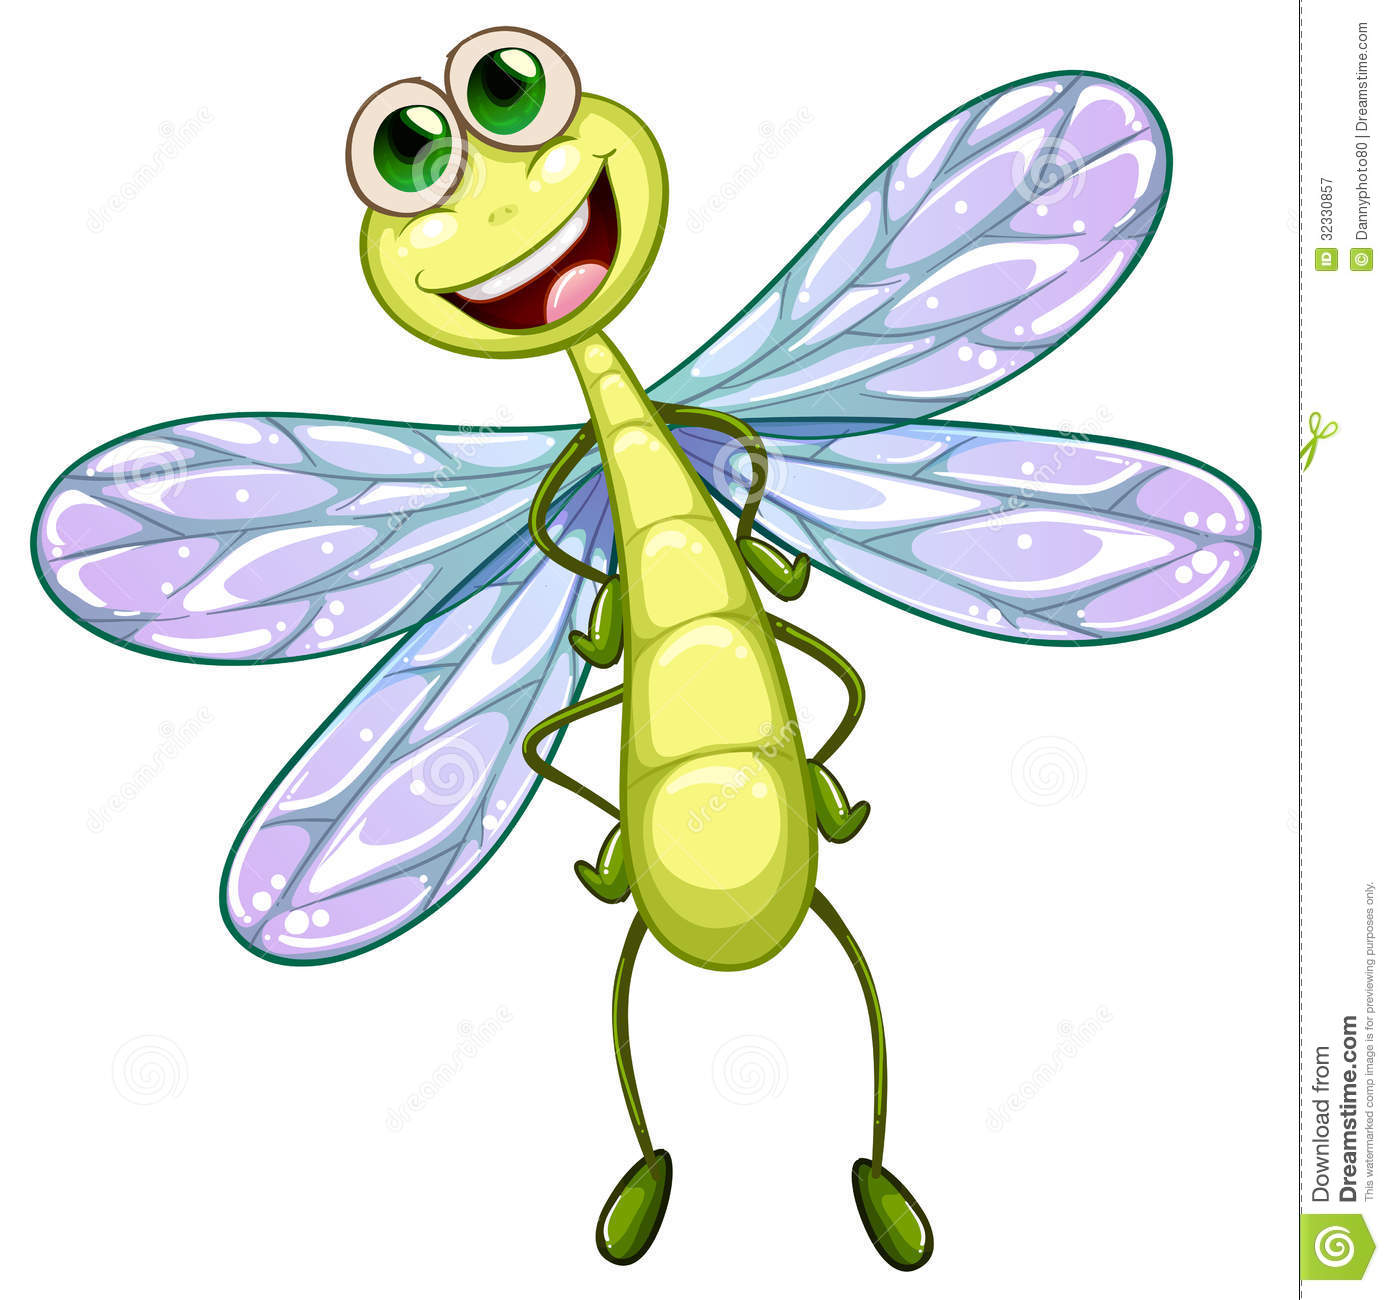 Smiling Dragonfly Royalty Free Stock Photography   Image  32330857